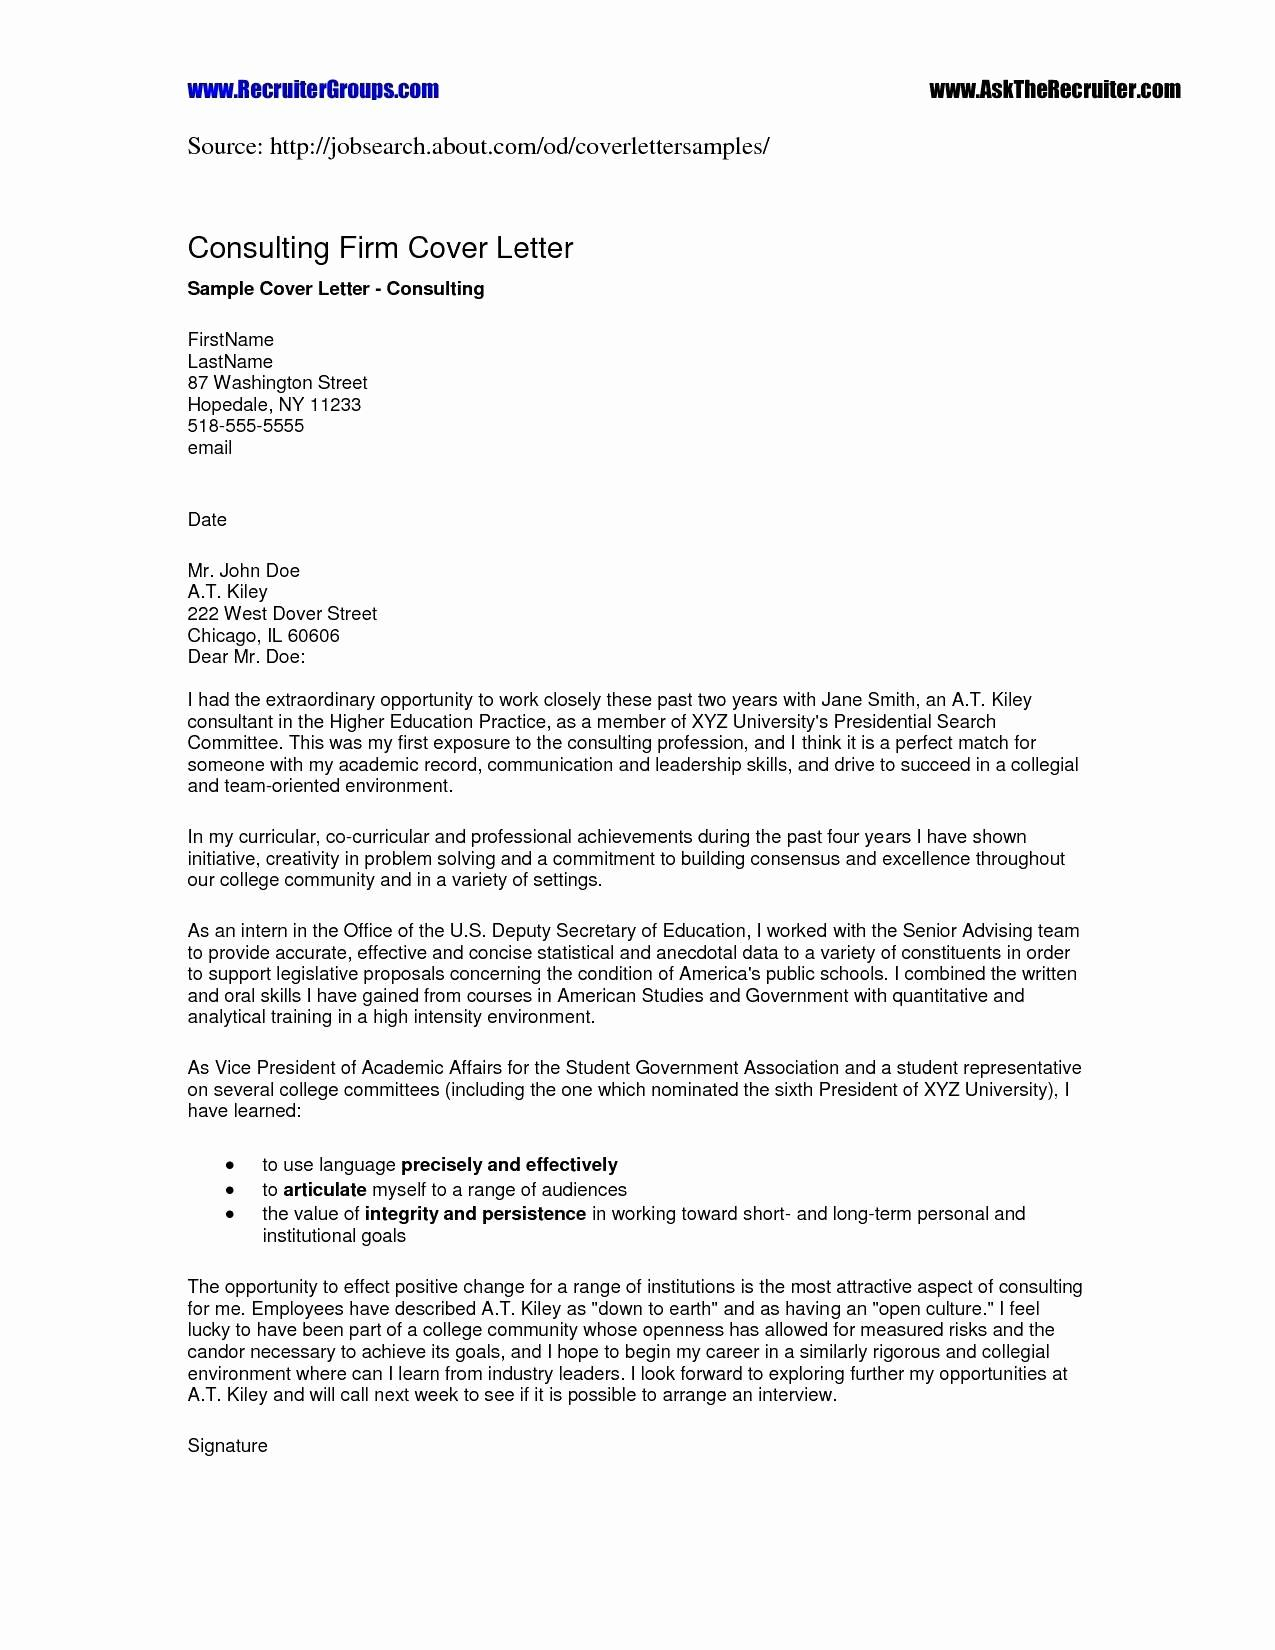 microsoft word fax cover letter template 41 fresh printable fax cover letter resume templates ideas